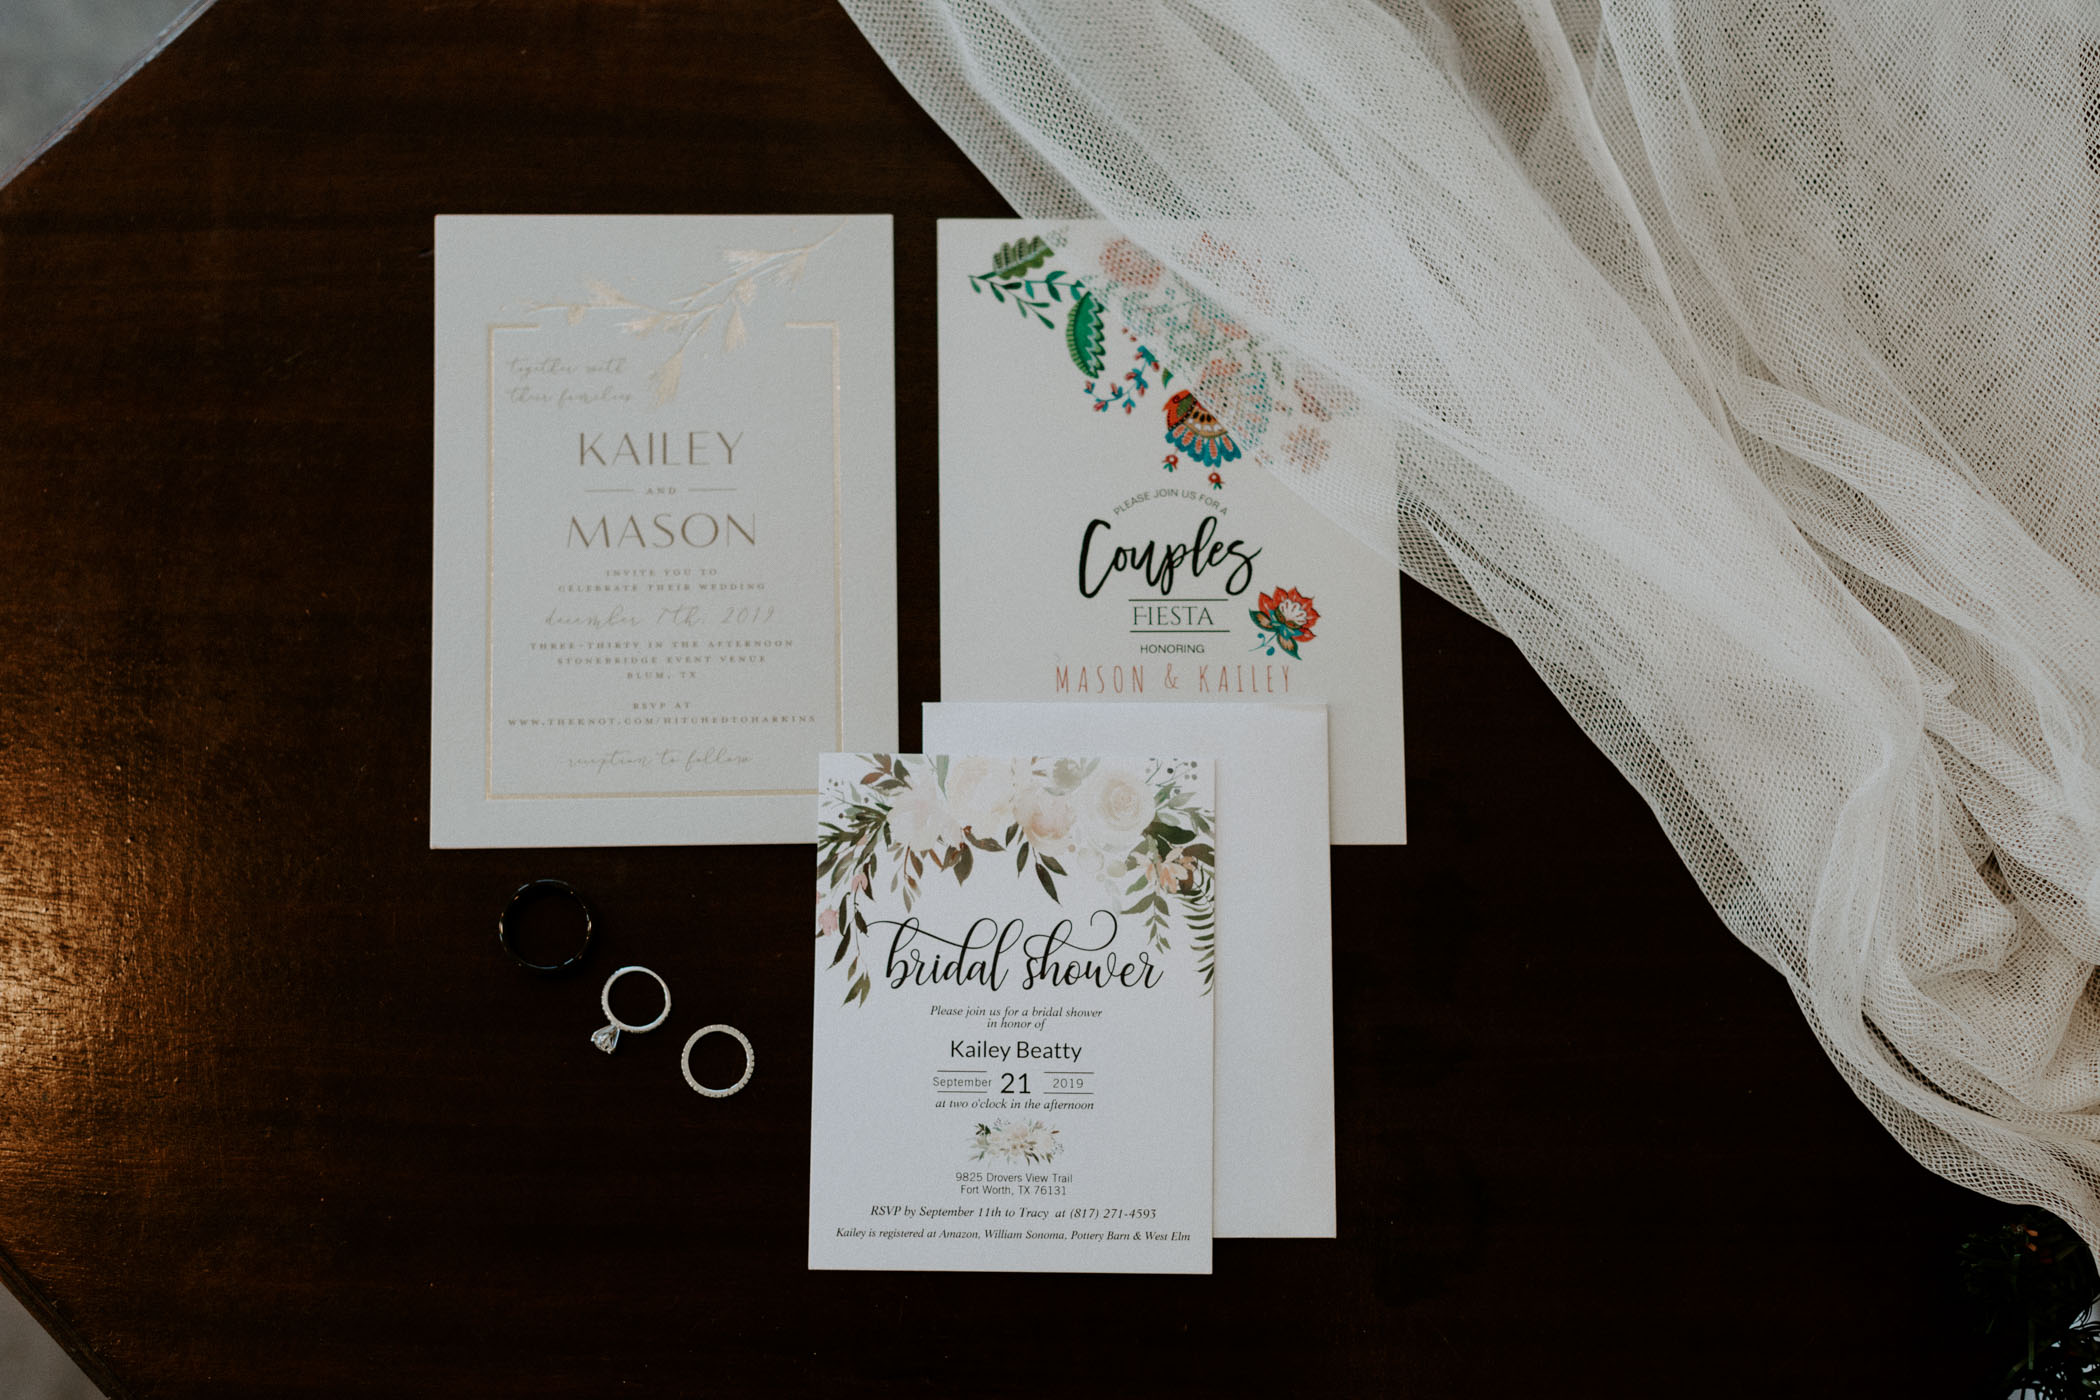 Detail photo of wedding day invites and wedding rings